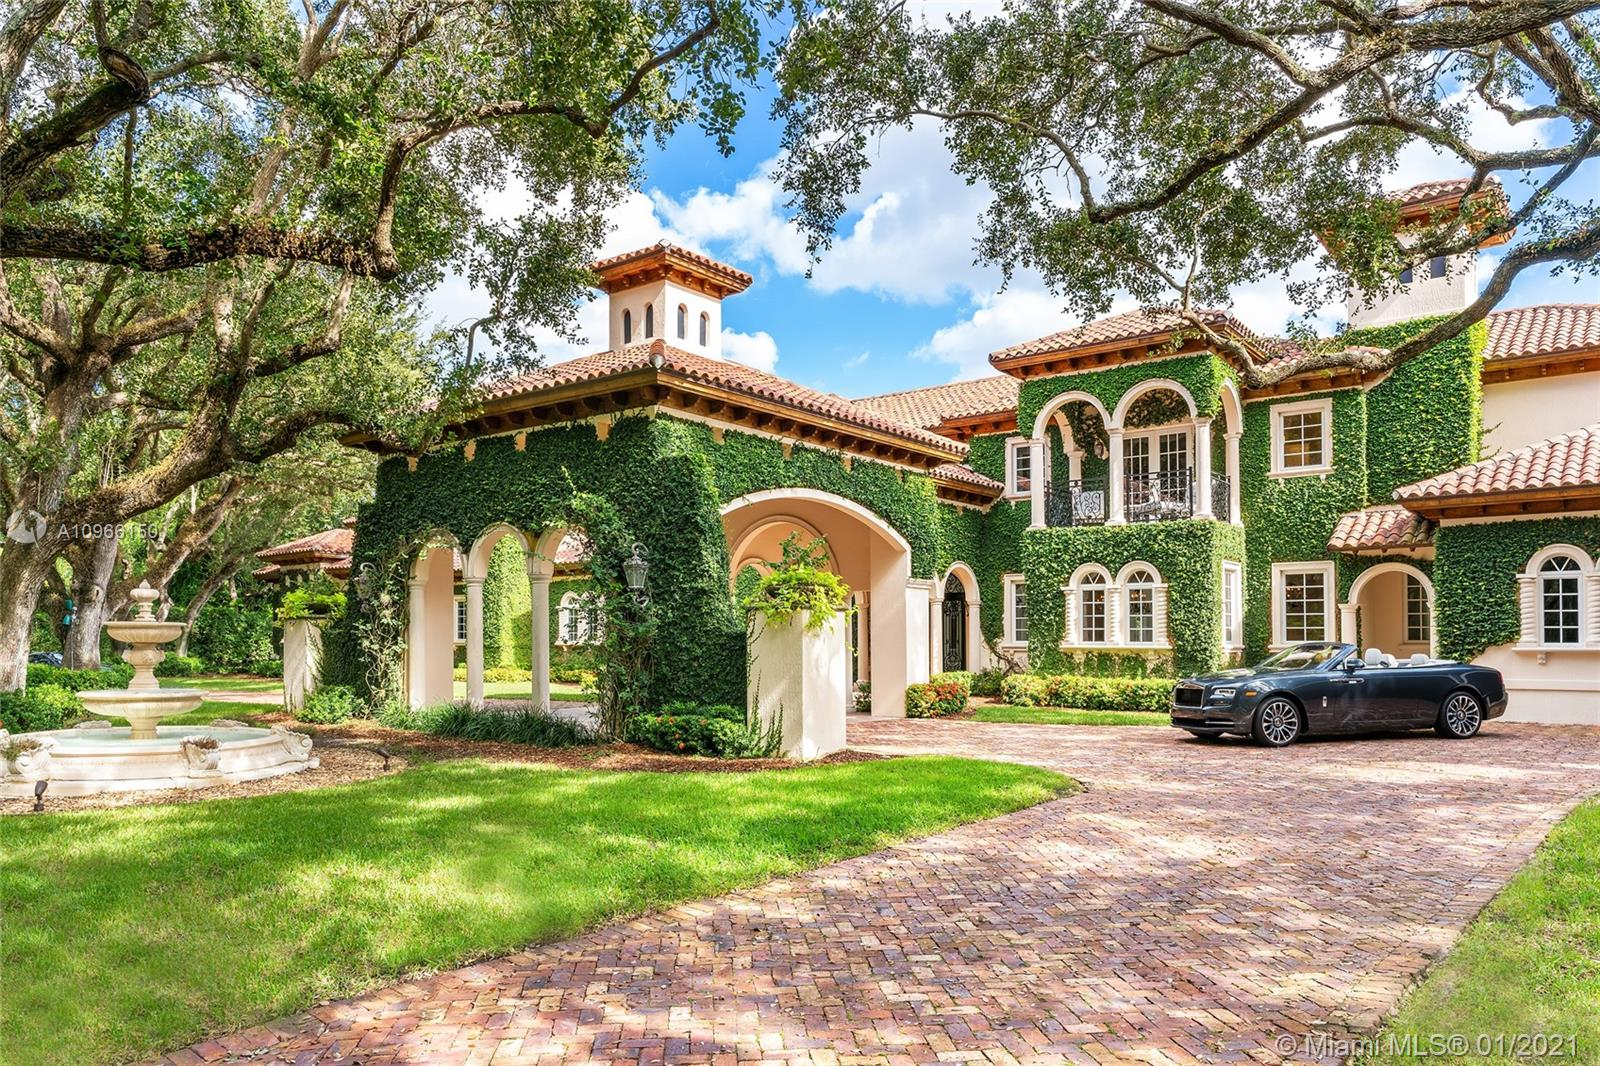 "This Mediterranean inspired masterpiece of elegance & style in Coral Gables is known as ""Casa Arboles"" sits on a manicured 2.87-acre lot w/an amazing canopy of 88 mature oak trees. The two-story gated estate is a private compound ideal for an extended family, accommodating for live in staff & was meticulously remodeled in 2020. Features expansive living, dining & family areas, marble floors, gourmet kitchen, a library, elevator, 2 offices, gym, movie theater, & 2 private guest suites. The large principal suite sports a sitting room, 2 balconies & stunning dual bathrooms and voluminous walk-in closets. The outdoor resort-style areas made to entertain with a fountain, new limestone pool deck, covered seating areas, salt water pool w/hot tub, full lighted tennis & basketball court."